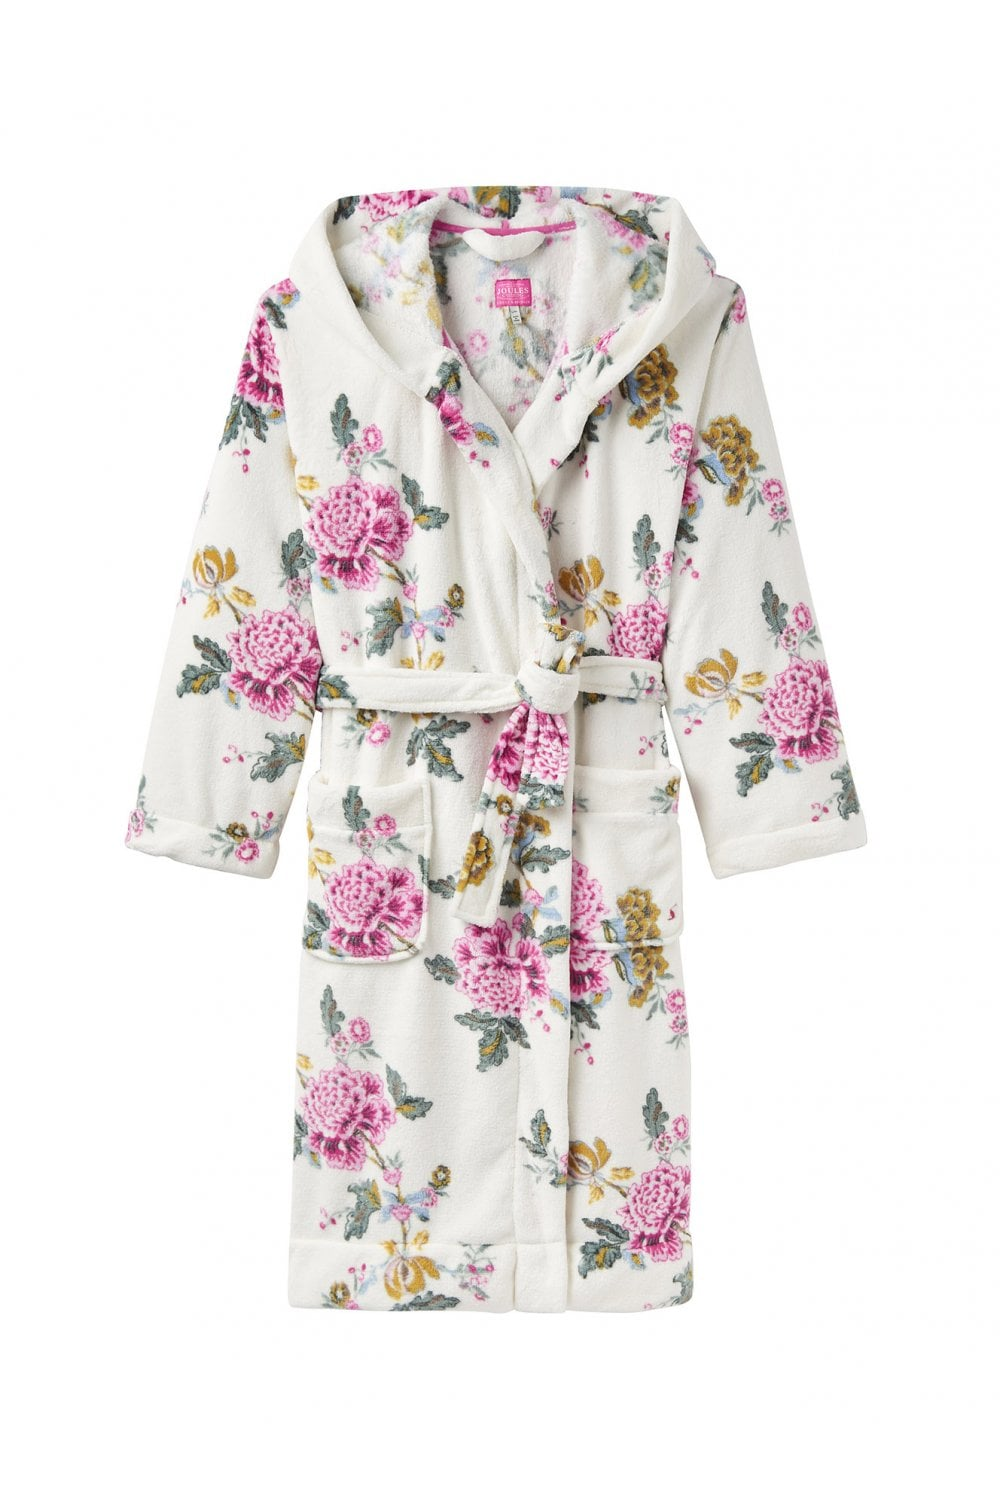 5a7af45a55 Joules Womens Rita Printed Fleece Dressing Gown - Cream Chinoise ...